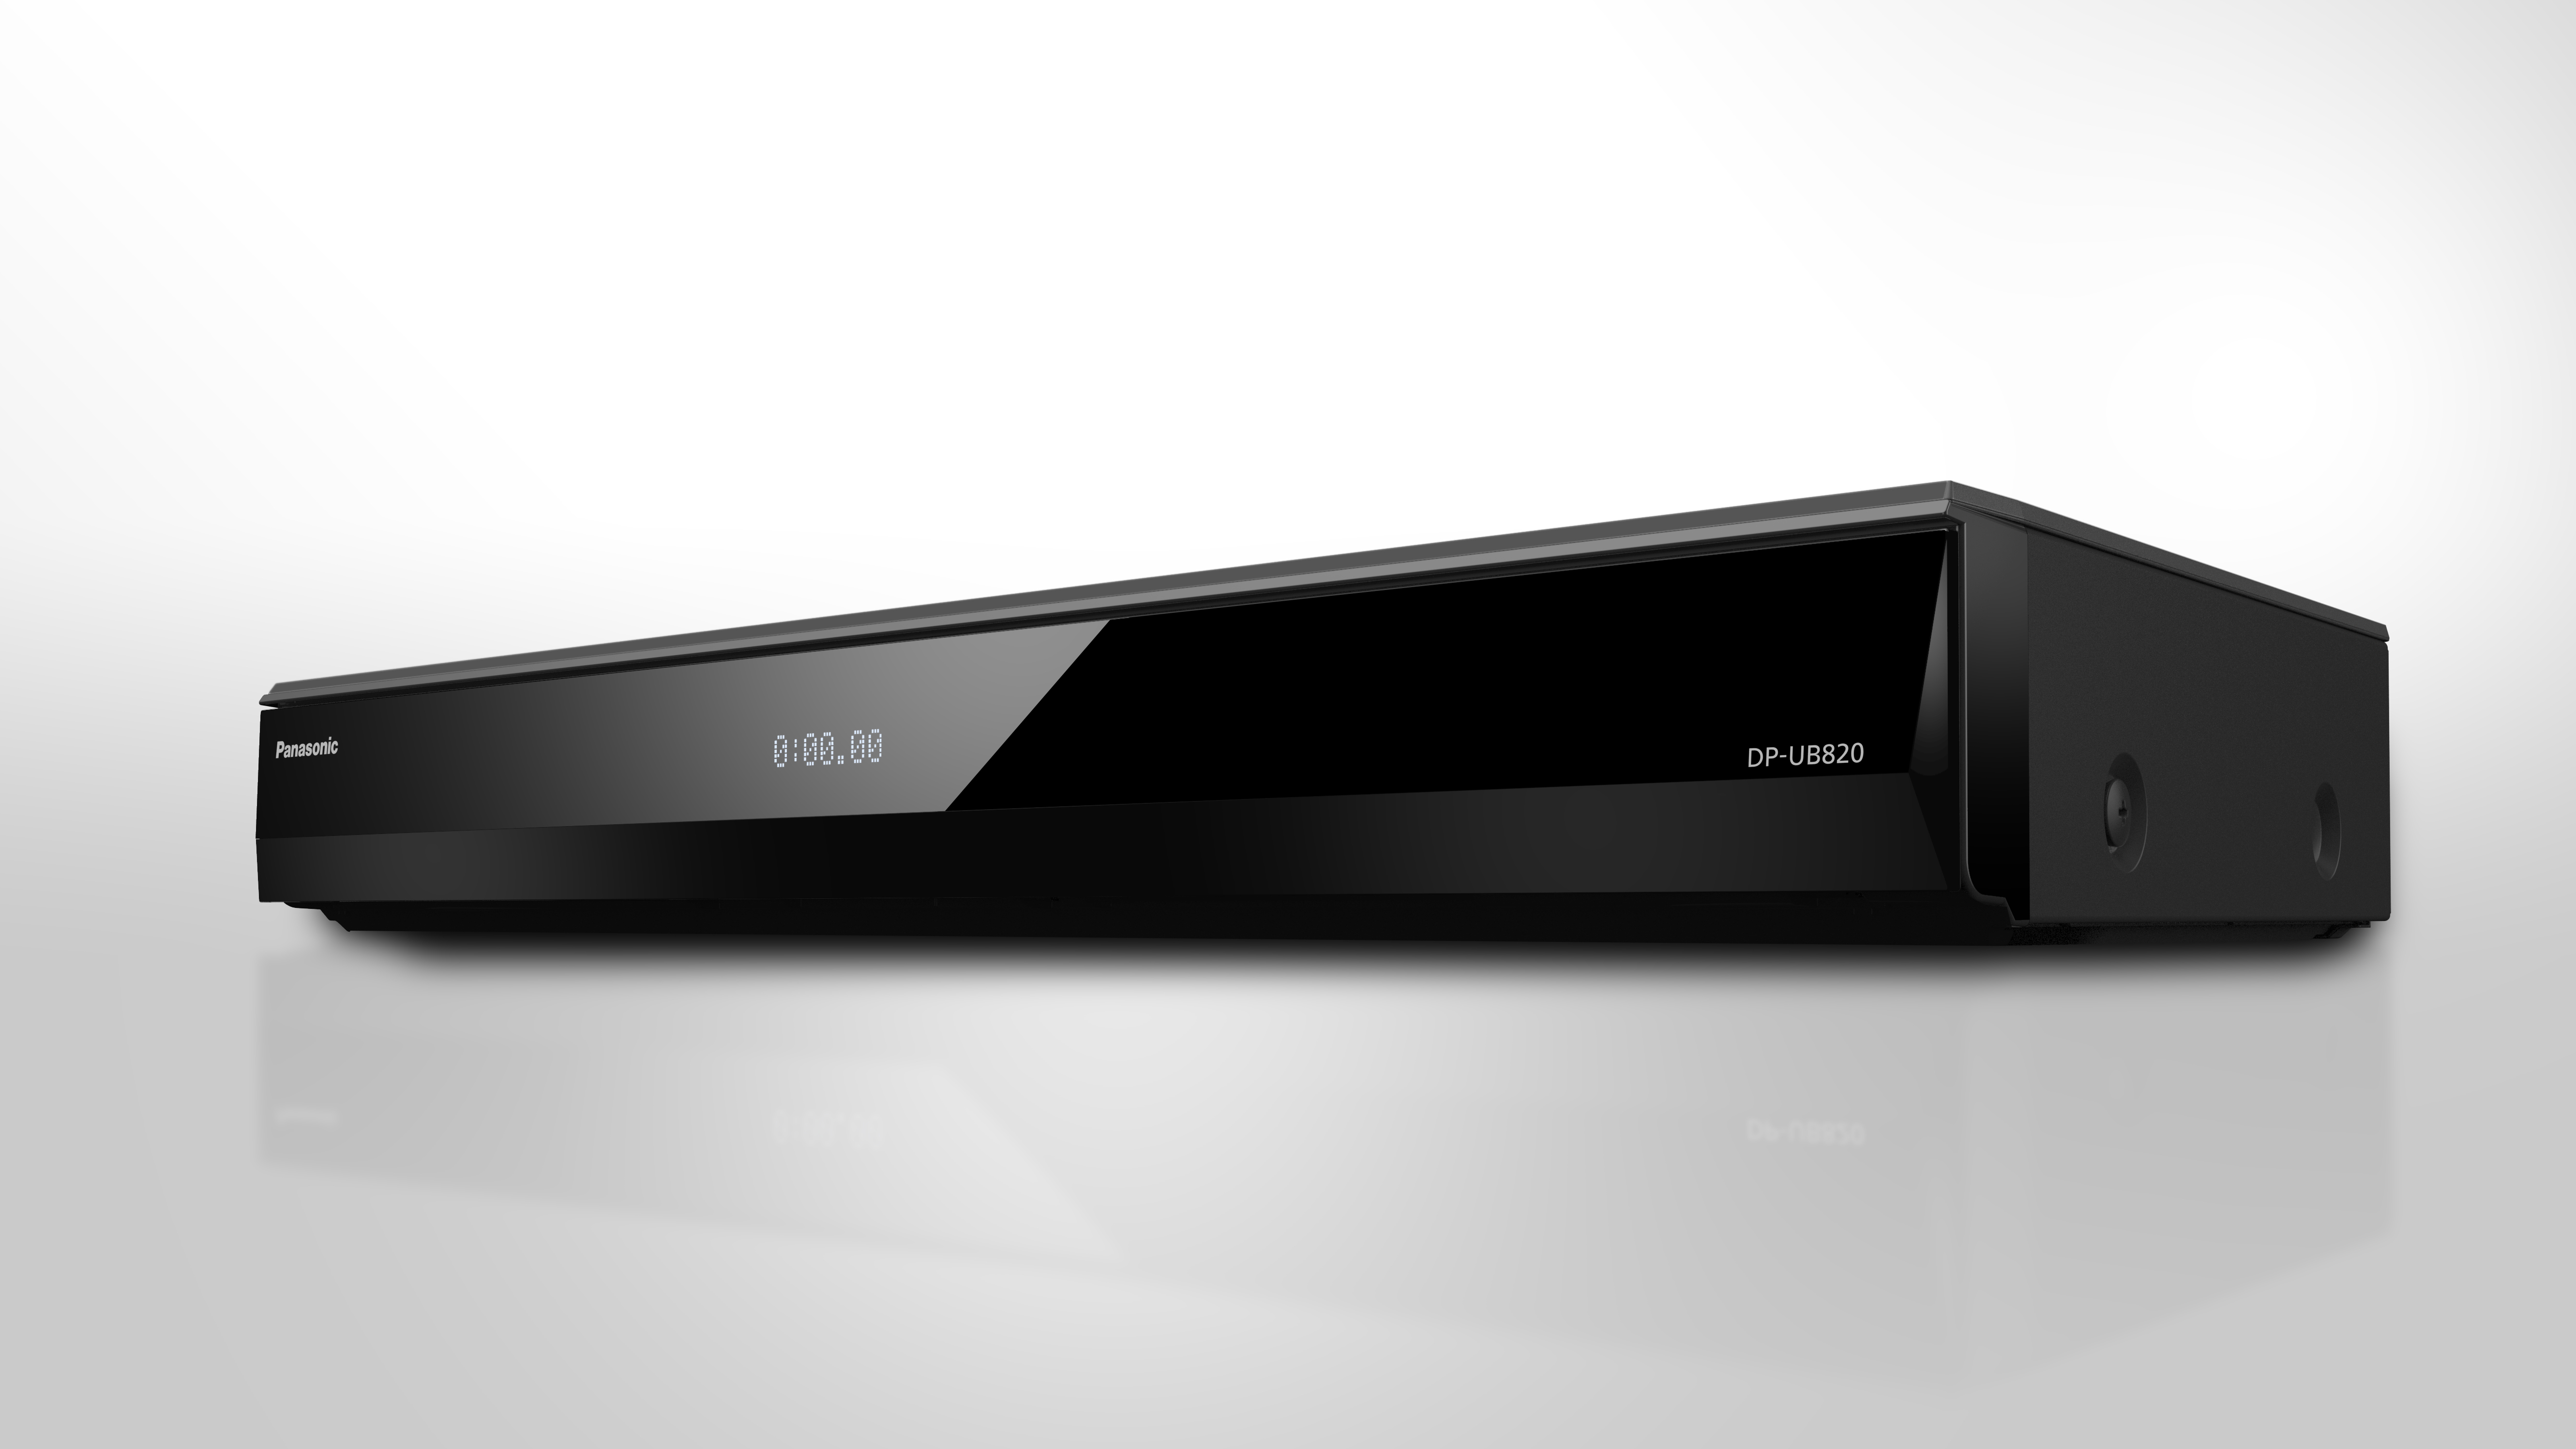 Panasonic's latest 4K Blu Ray players have thrown in their support for Dolby Vision.